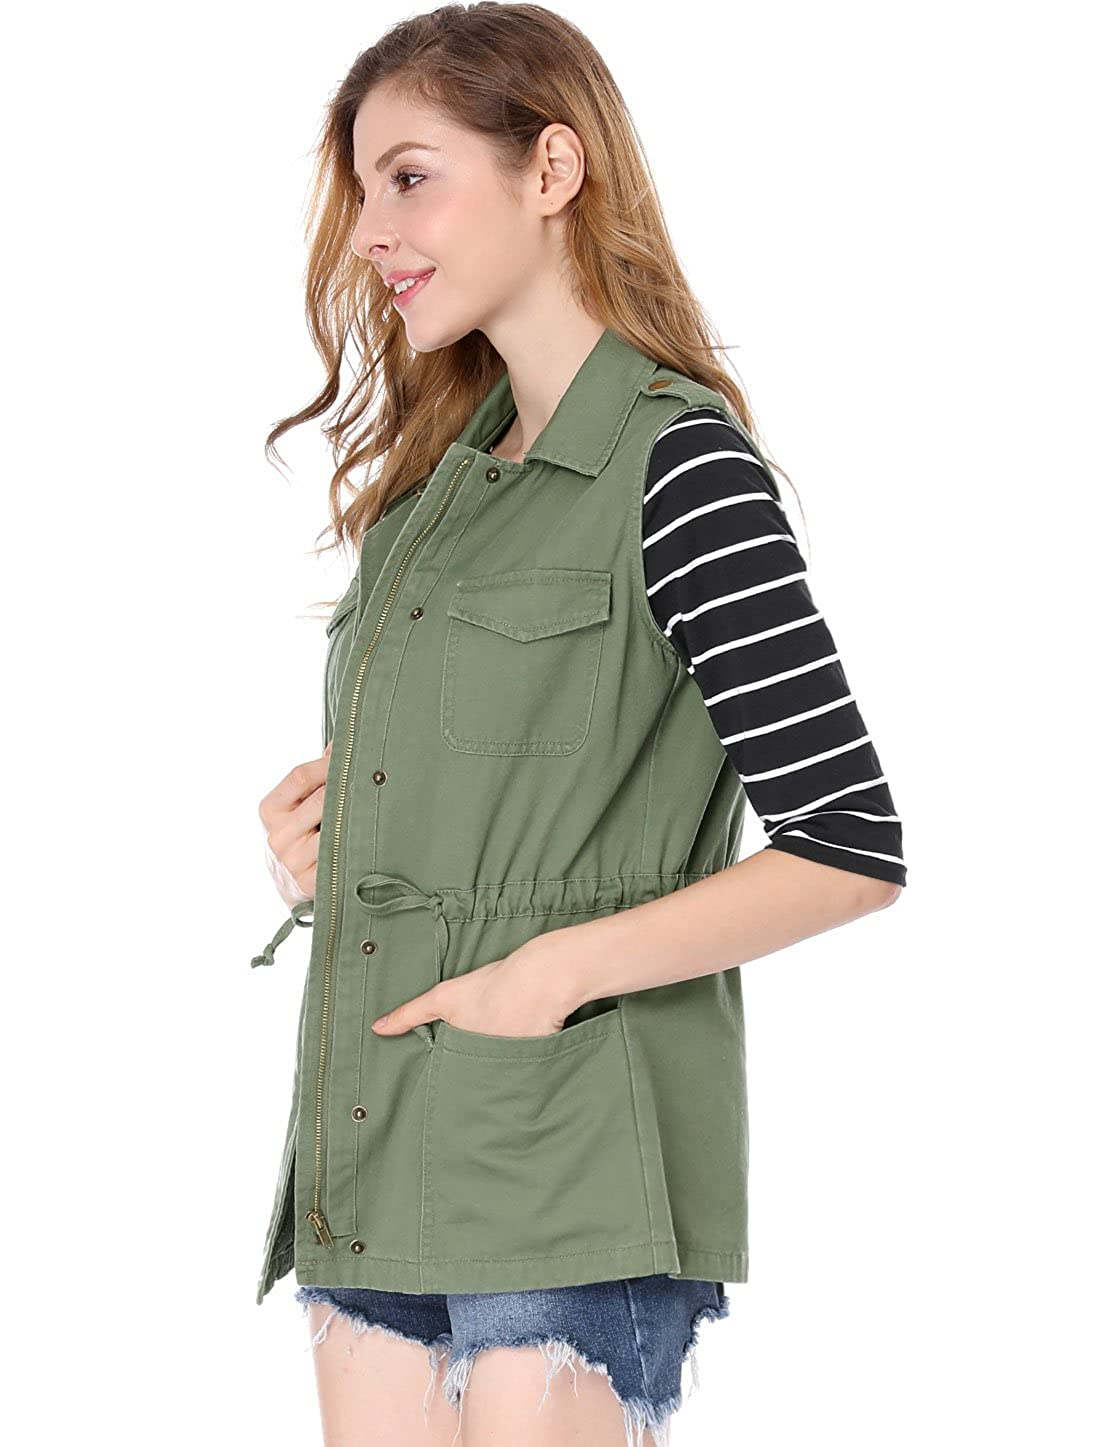 Allegra K Womens Pockets Drawstring Anorak Military Cargo Vest At Green Army City Diaper Bag Amazon Coats Shop